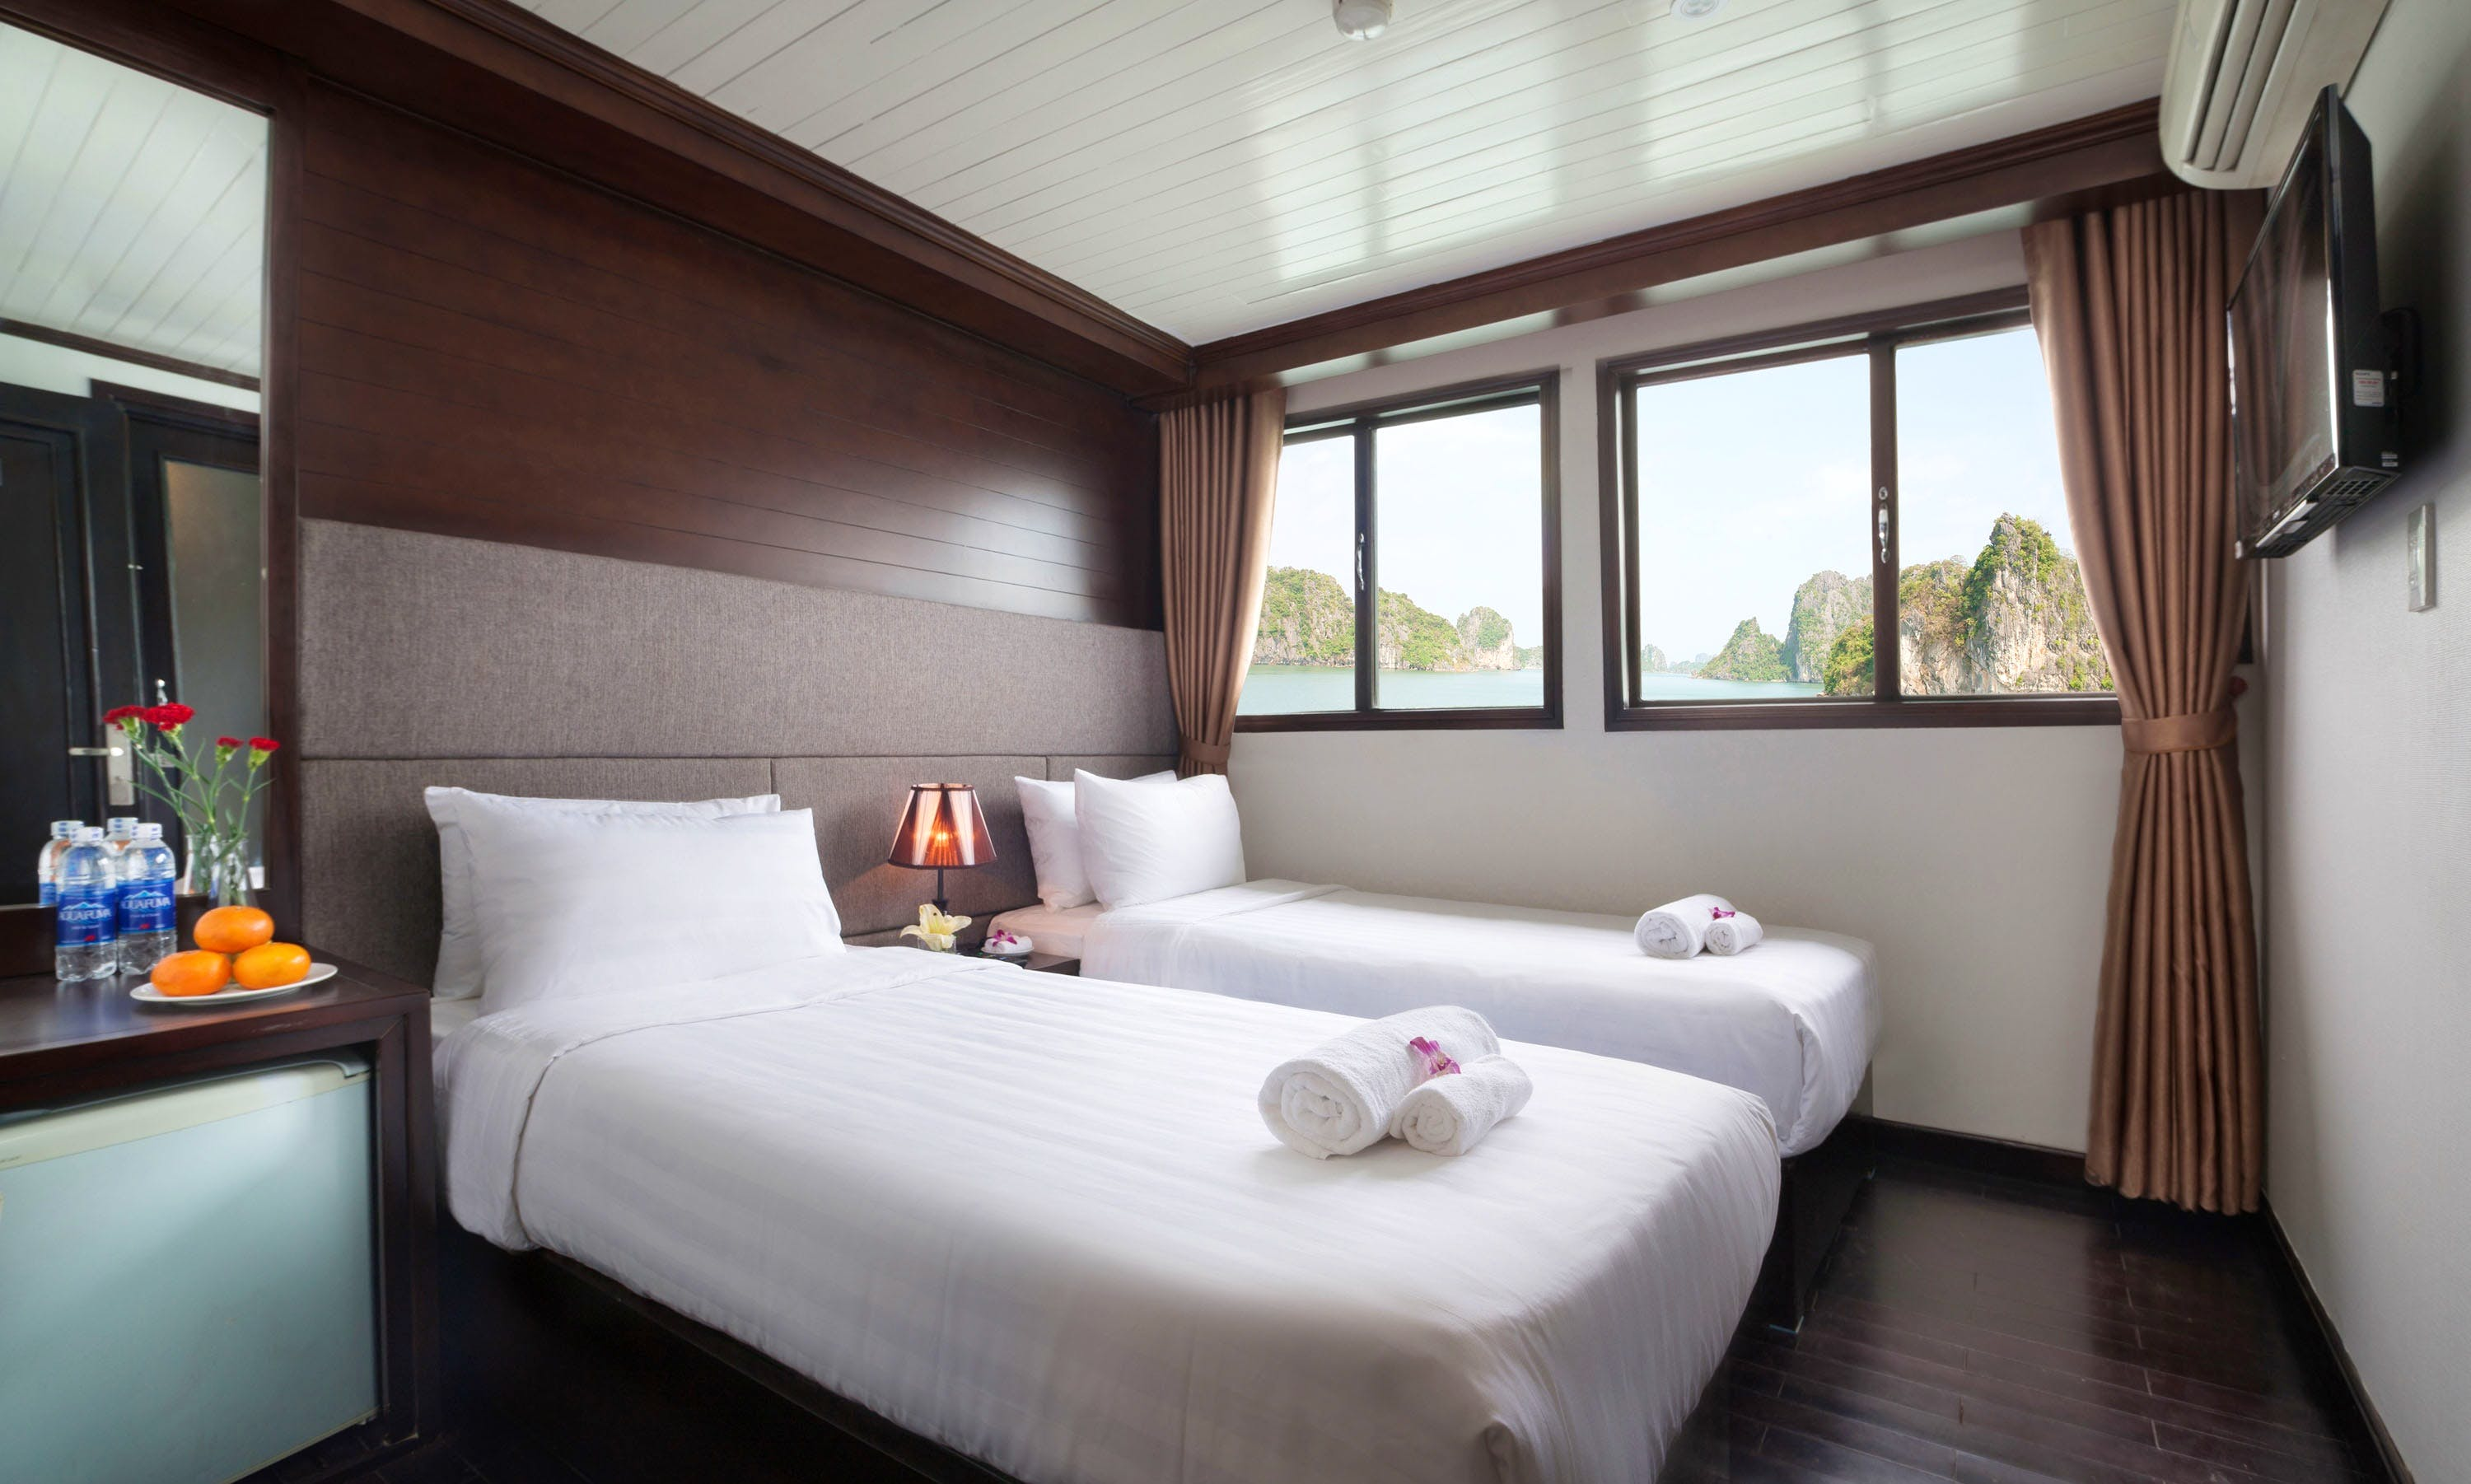 Enjoy Halong bay 2 days 1 night with luxury services